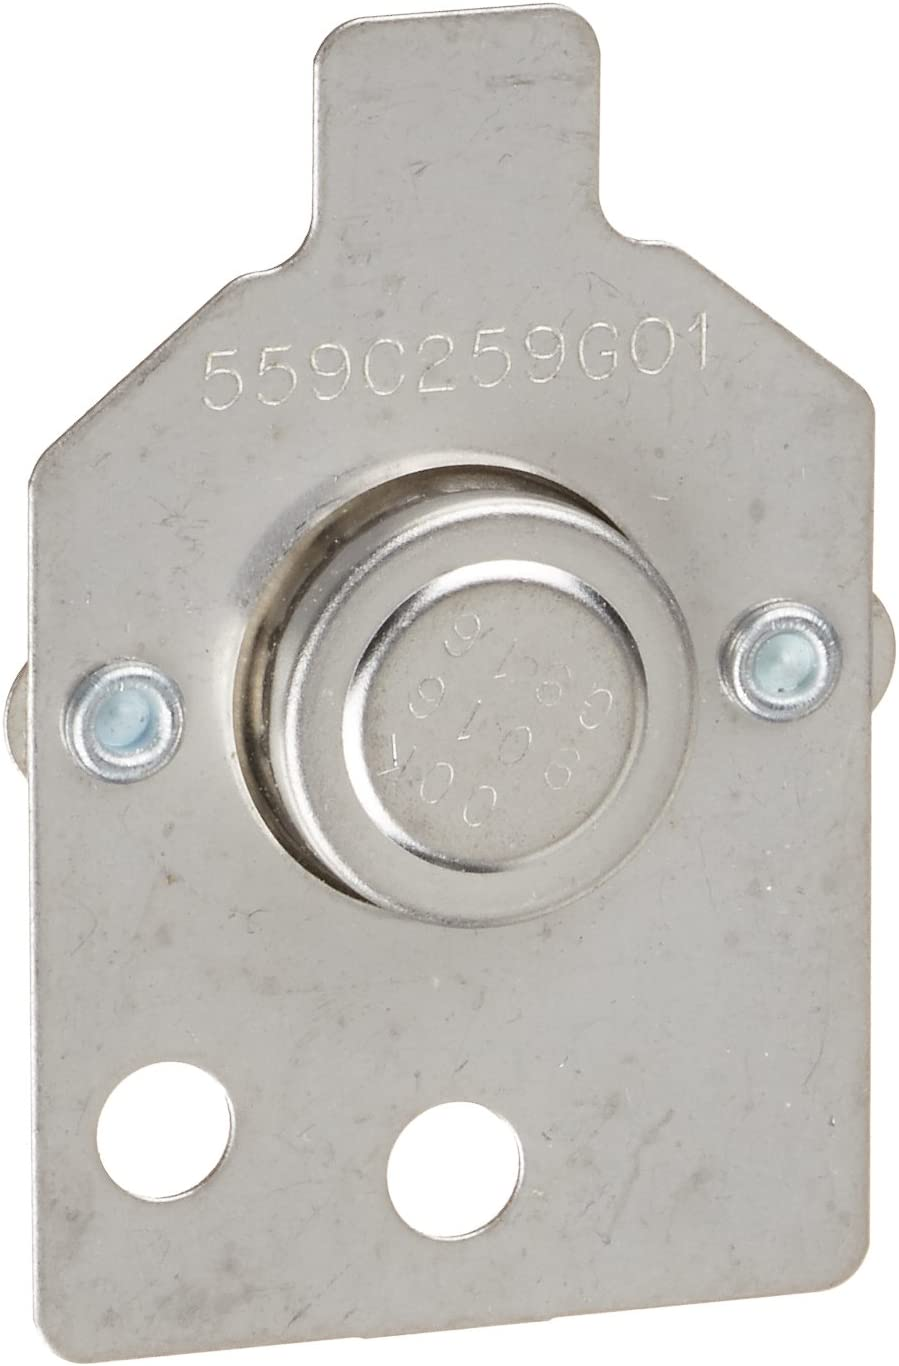 General Electric WE4M298 Dryer Thermostat